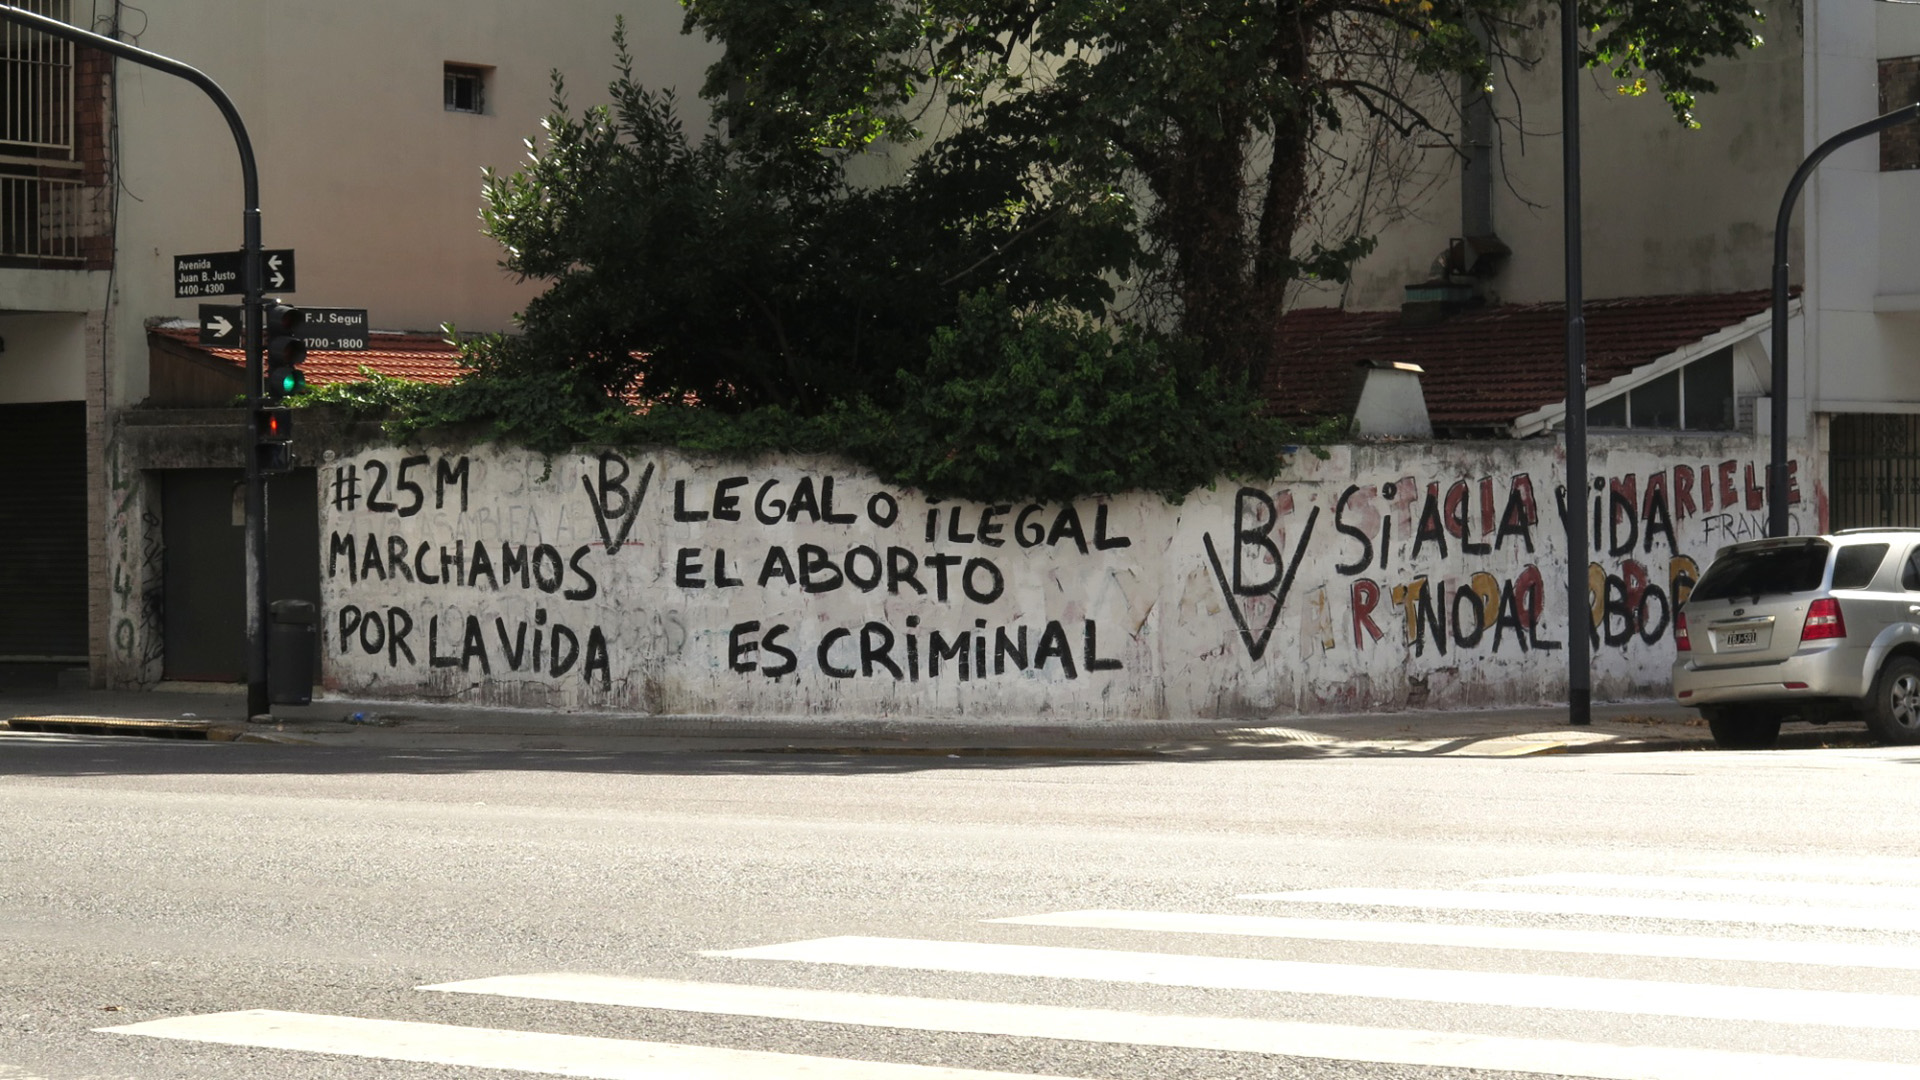 """Legal o ilegal el aborto es criminal"""